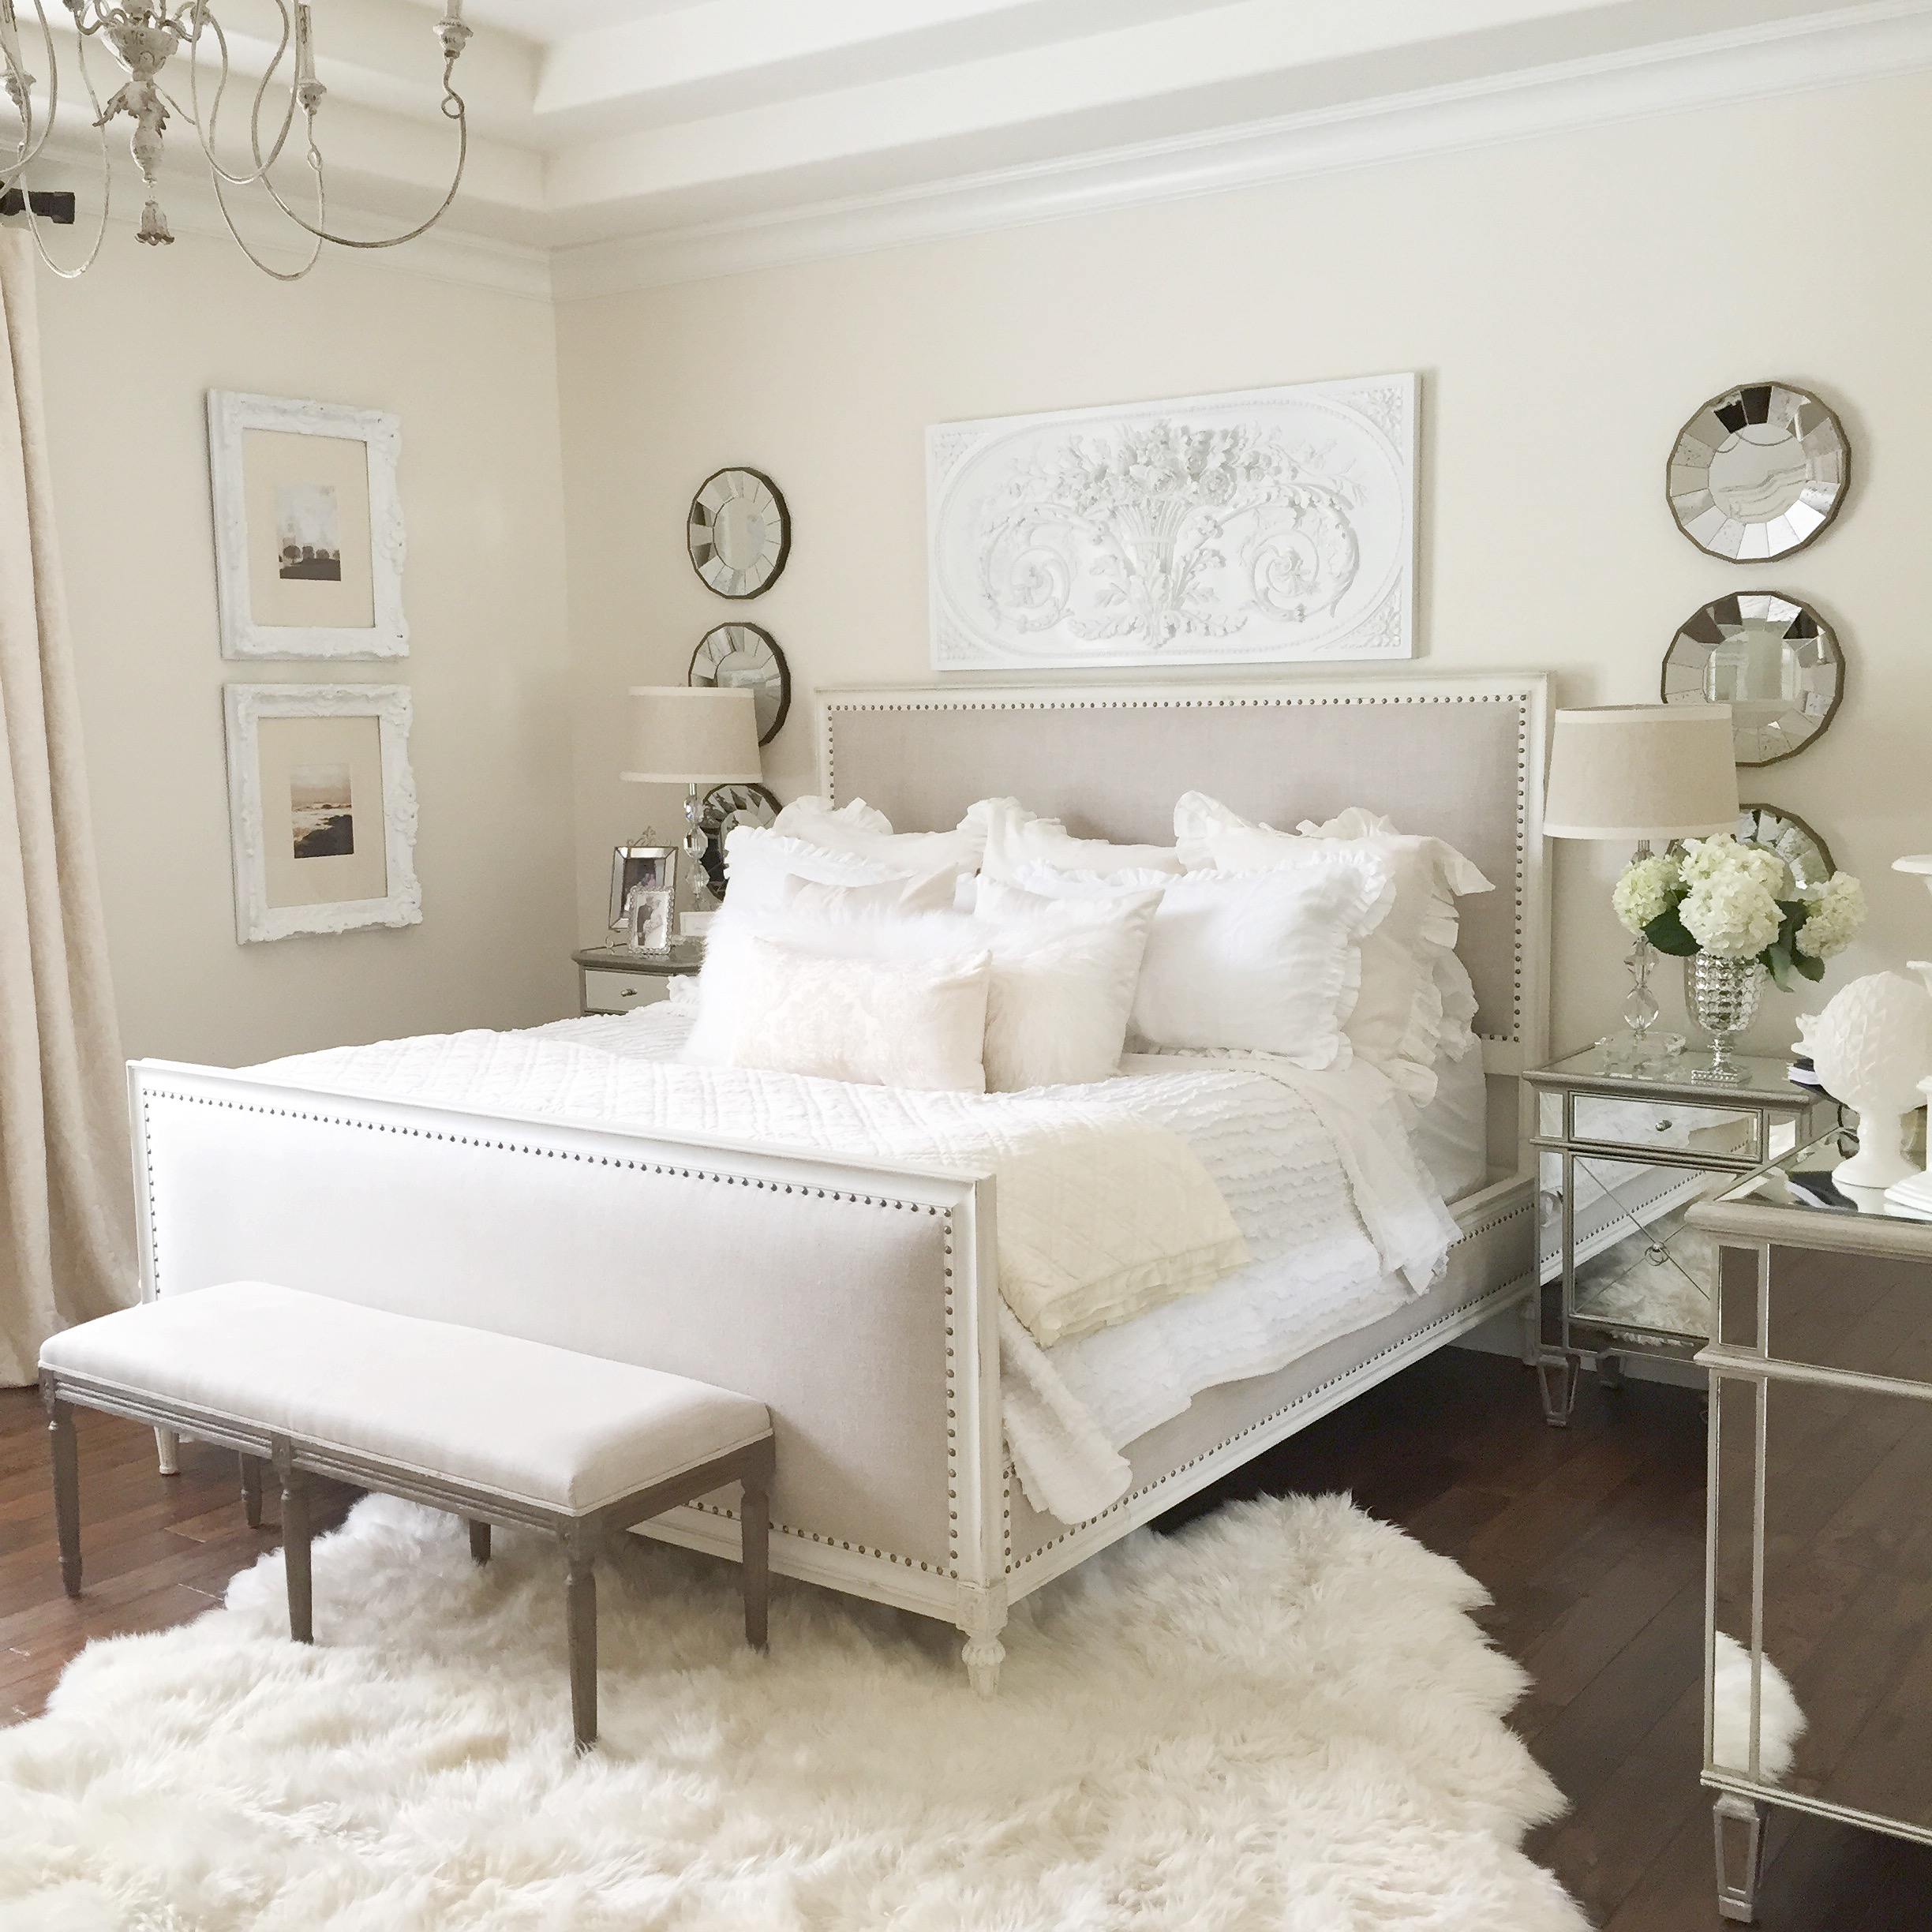 Restoration Hardware Bedroom Colors Cute Black And White Bedroom Ideas Little Boy Bedroom Furniture Girls Bedroom Colour Ideas: Tips For You To Give Your Bedroom An Easy Makeover